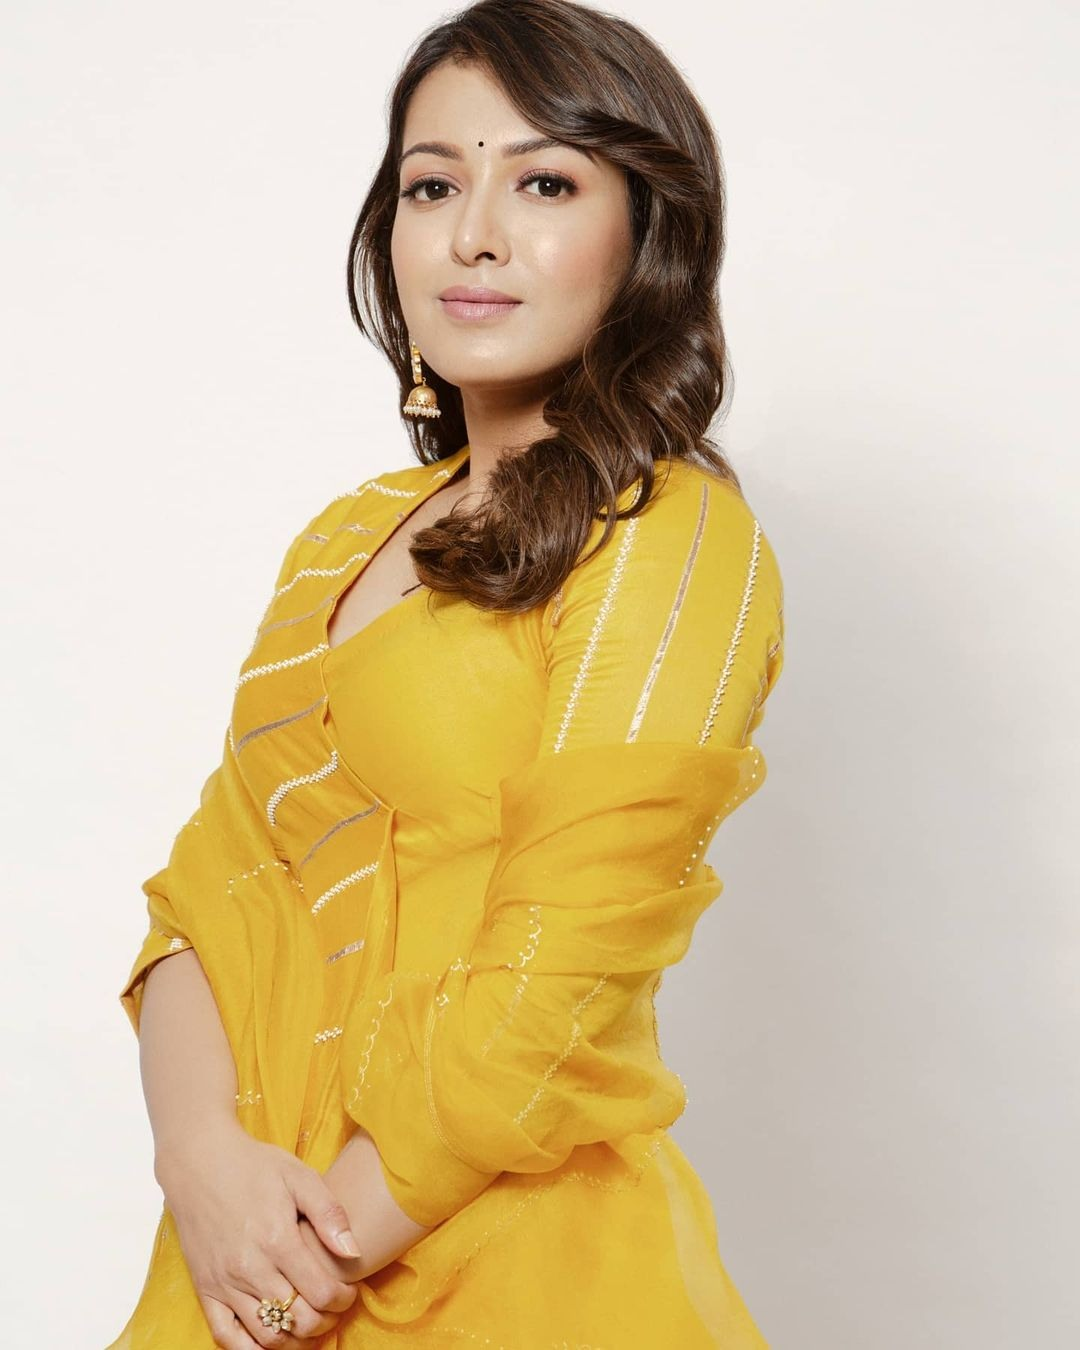 Catherine Tresa in yellow deepthee outfit for Bala thandanna movie pooja2